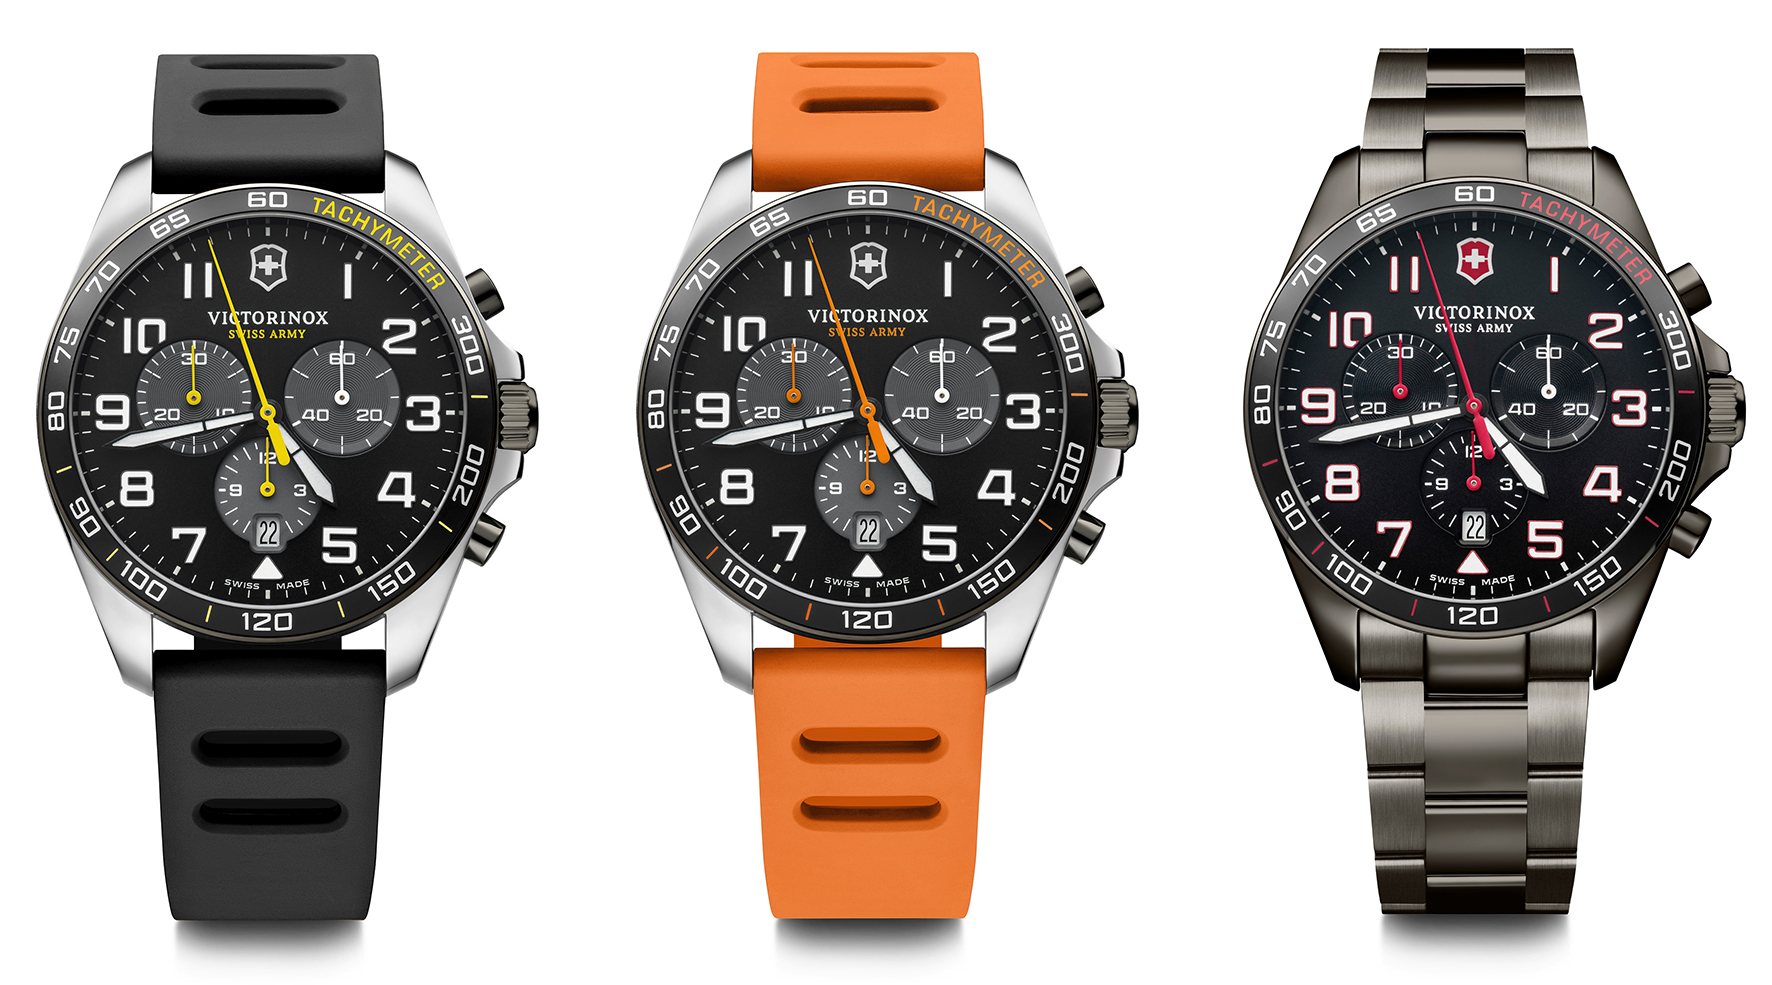 Linha Fieldforce Sport Chronograph Victorinox - boat shopping